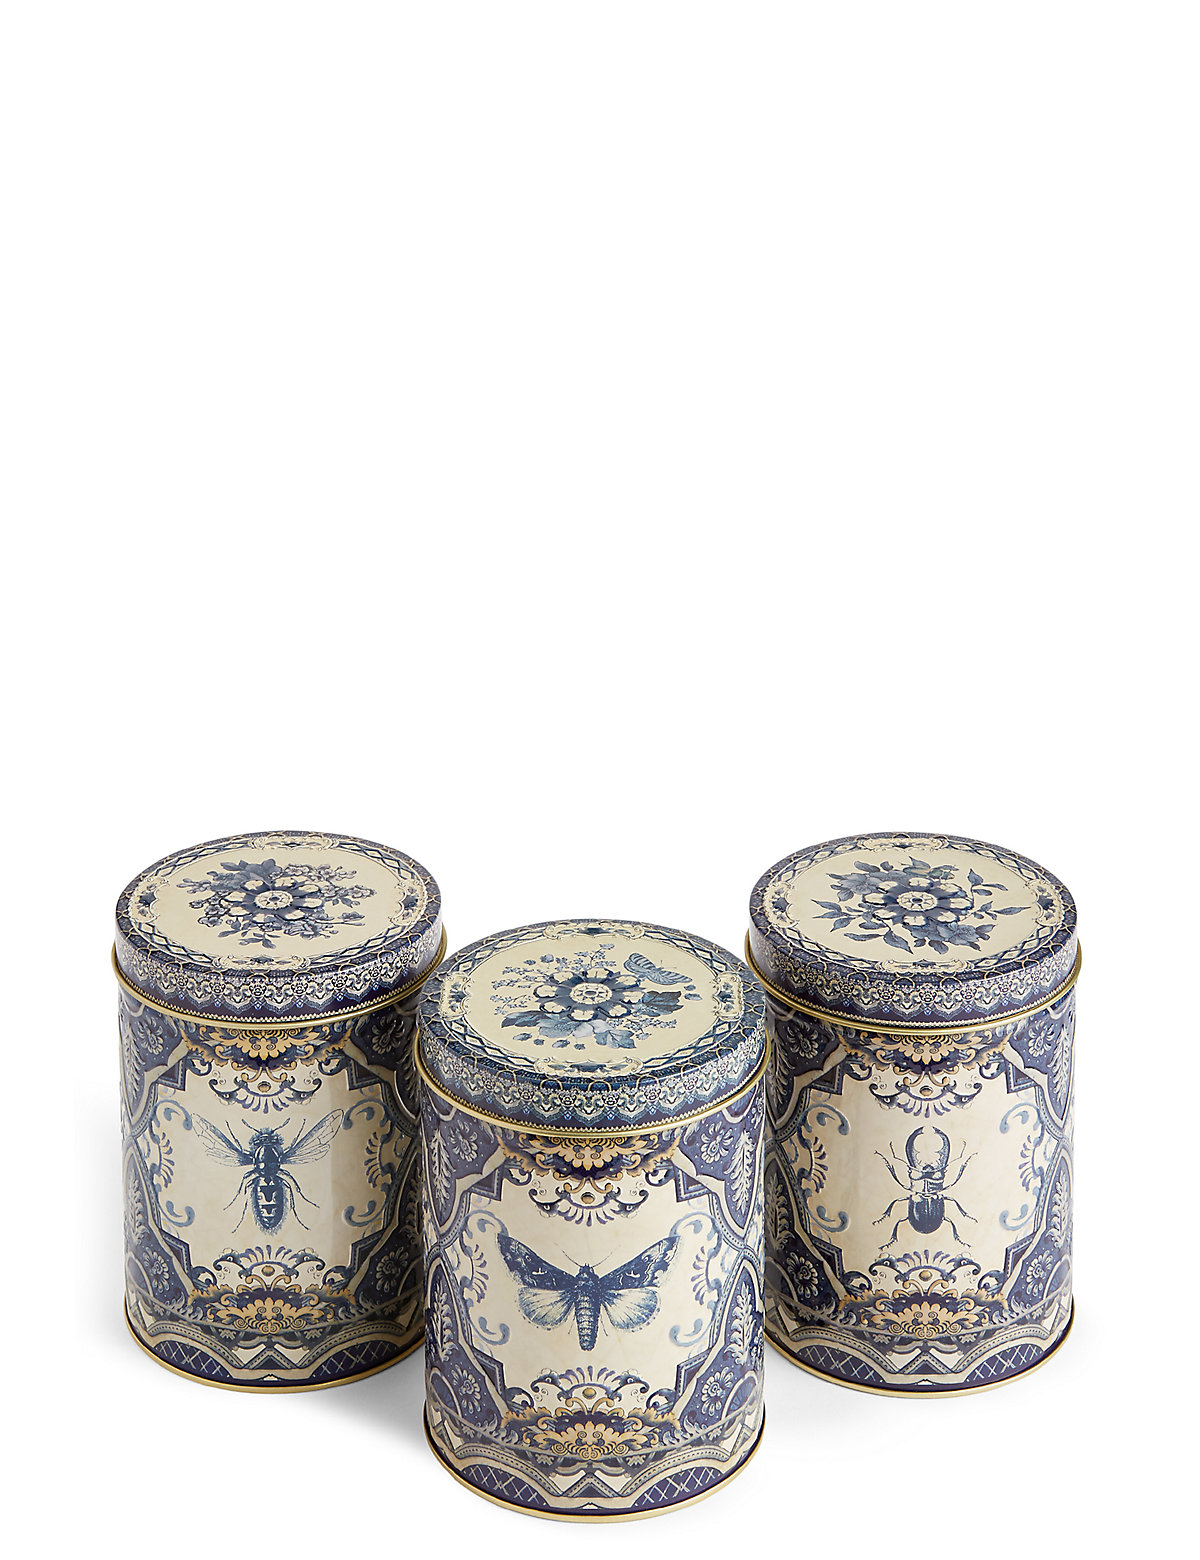 Dovecote Set of 3 Tea Coffee & Sugar Tins